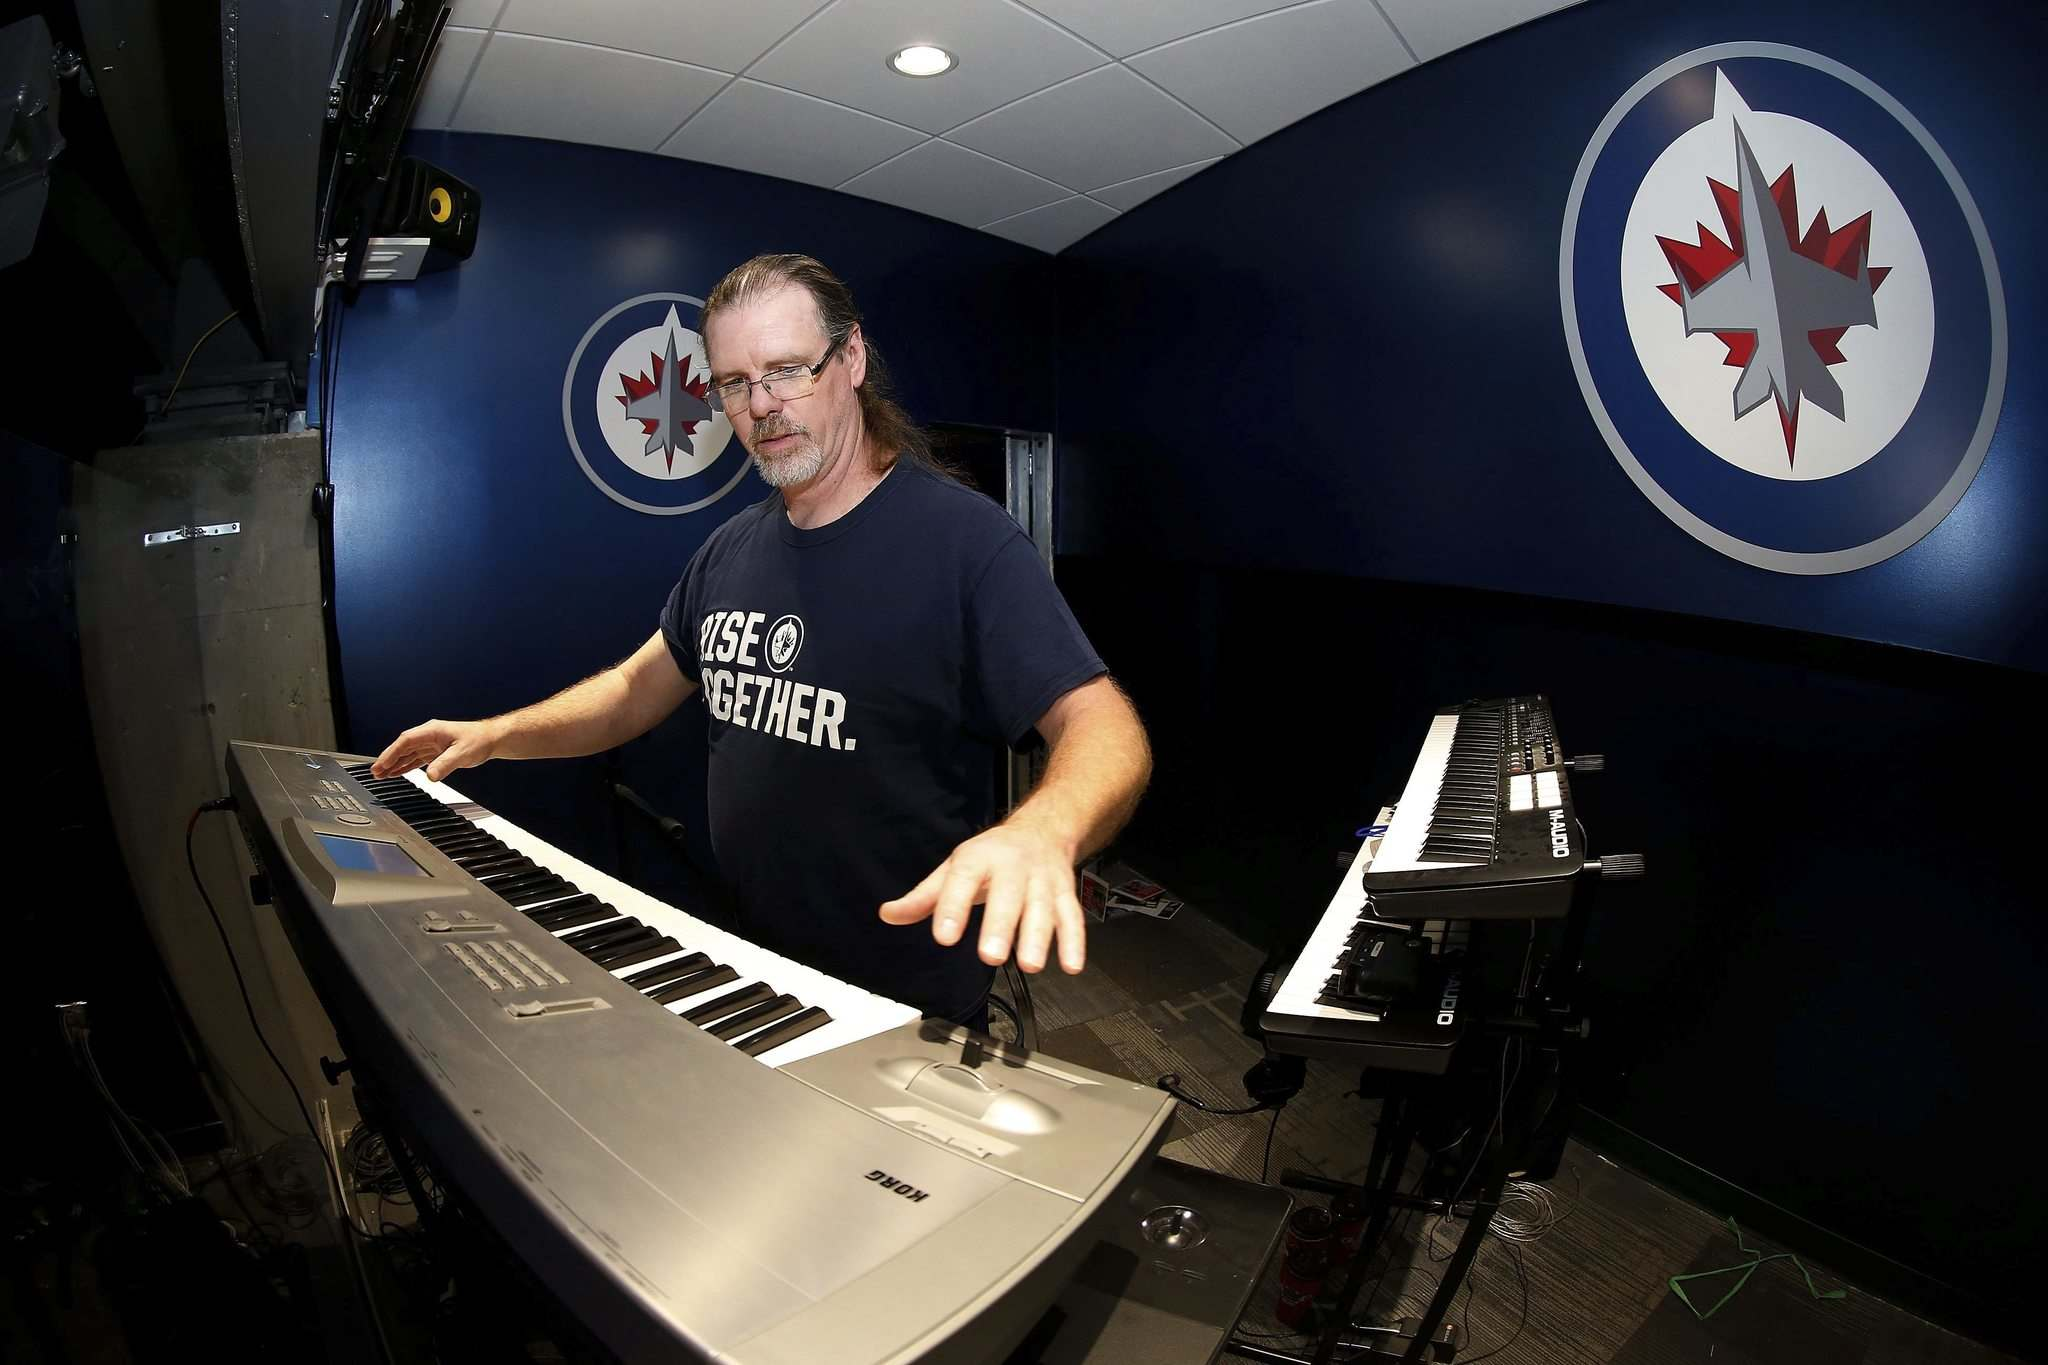 JOHN WOODS / WINNIPEG FREE PRESS</p><p>Jets' organist Chris Eccles is a rocker so hip-hop song requests, even if they come from visiting Edmonton Oilers superstar Connor McDavid, will be rebuffed.</p></p>